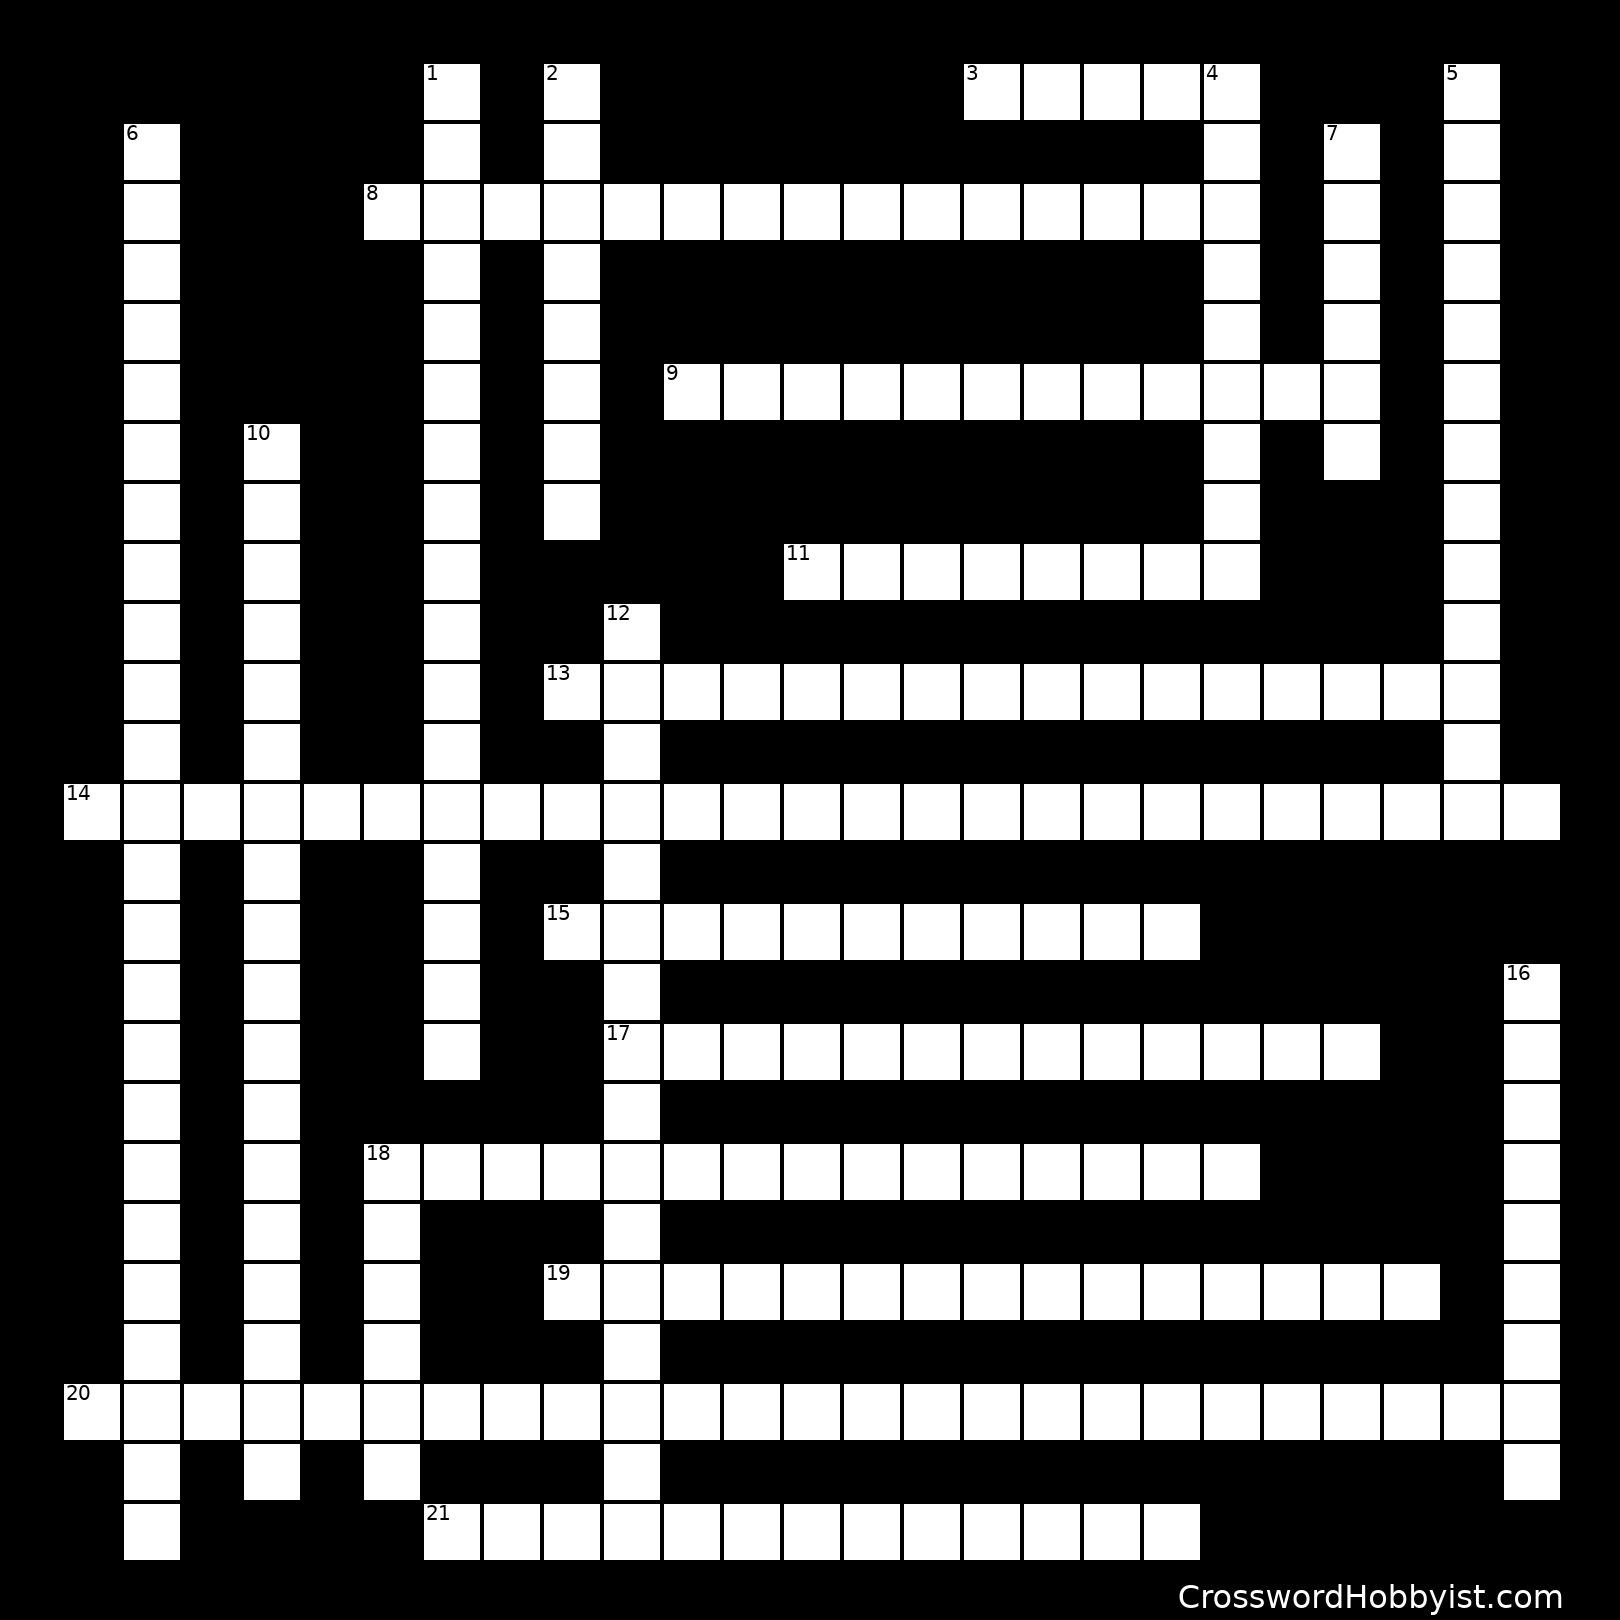 Chapter 4 Crossword